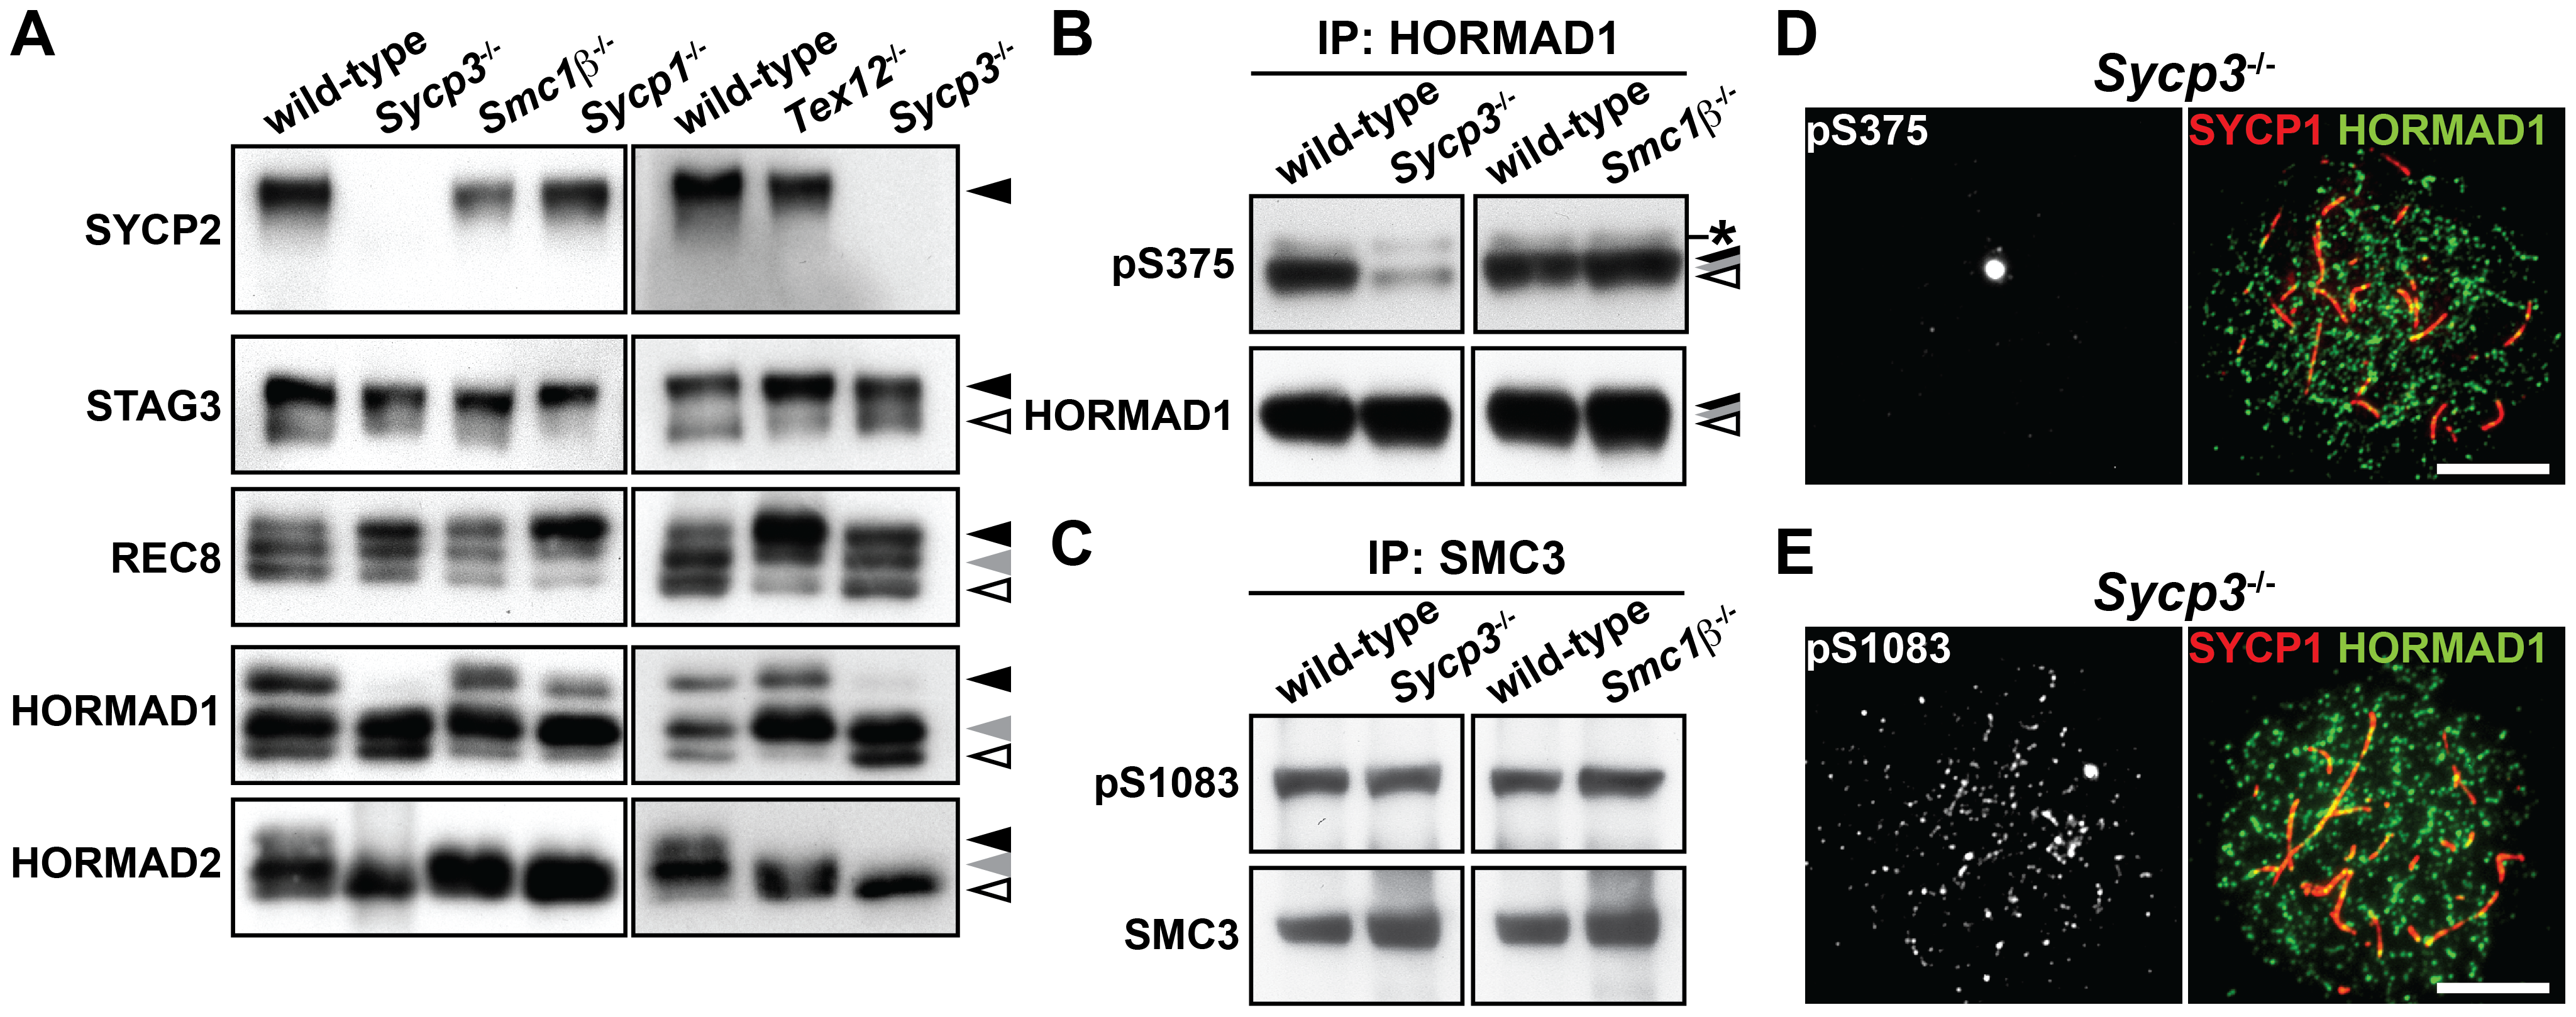 Phosphorylation of HORMAD1 is reduced in the absence of SYCP3.